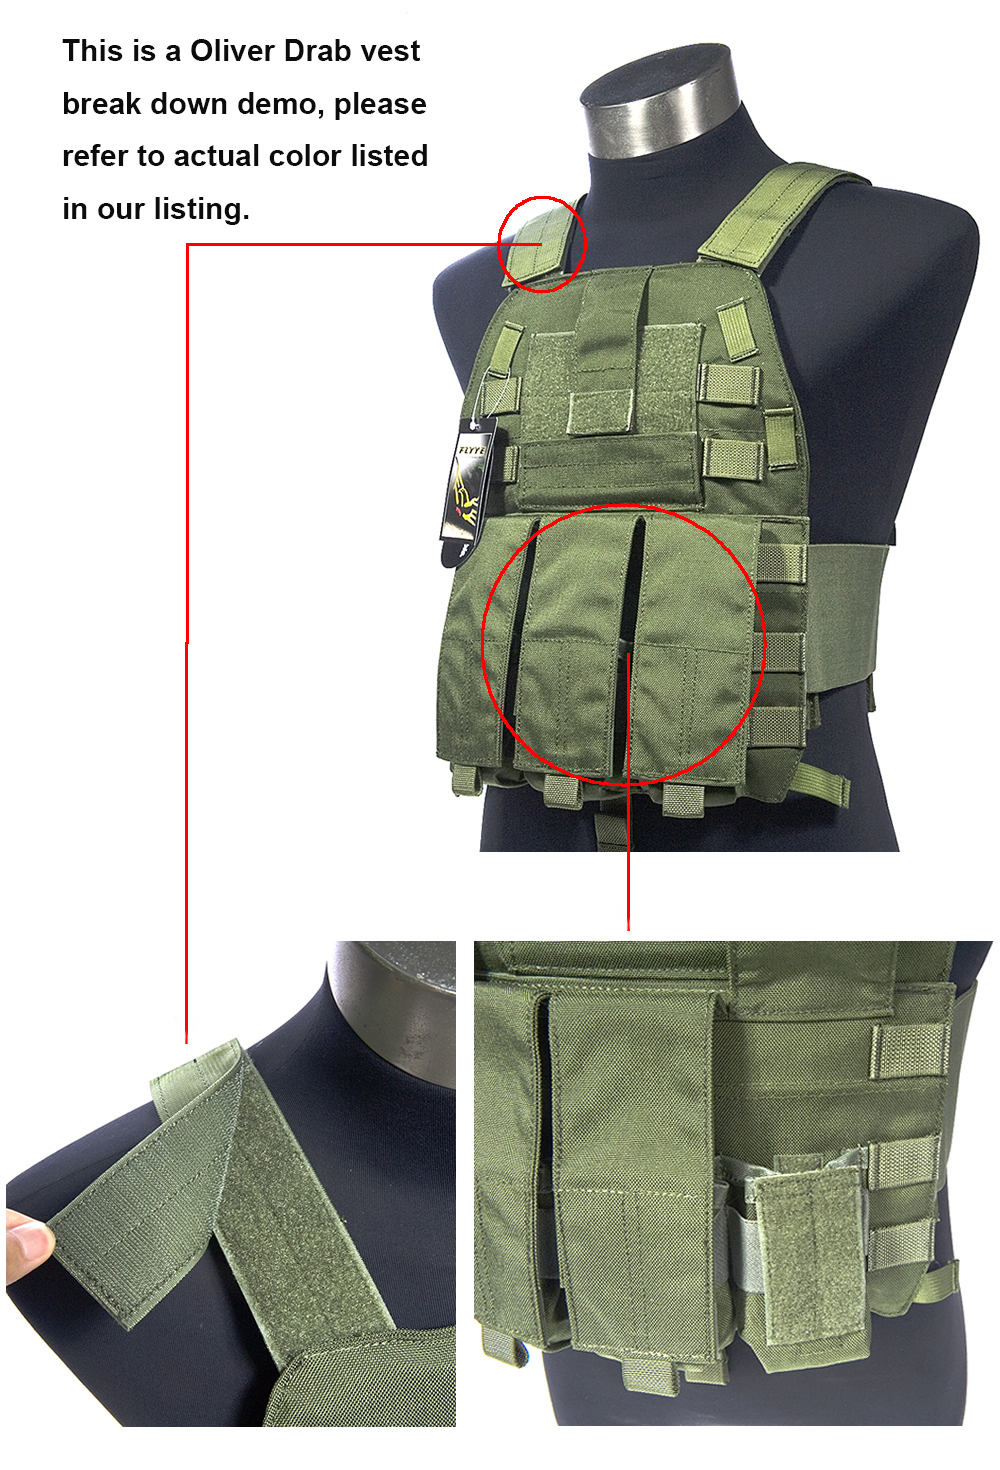 MILITECH Mil Spec Military LT6094K Oliver Drab OD Plate Carrier Combat Molle Tactical Vest Army Military Combat Vests Carrier pt01w 22 21s 341 circular mil spec mr li